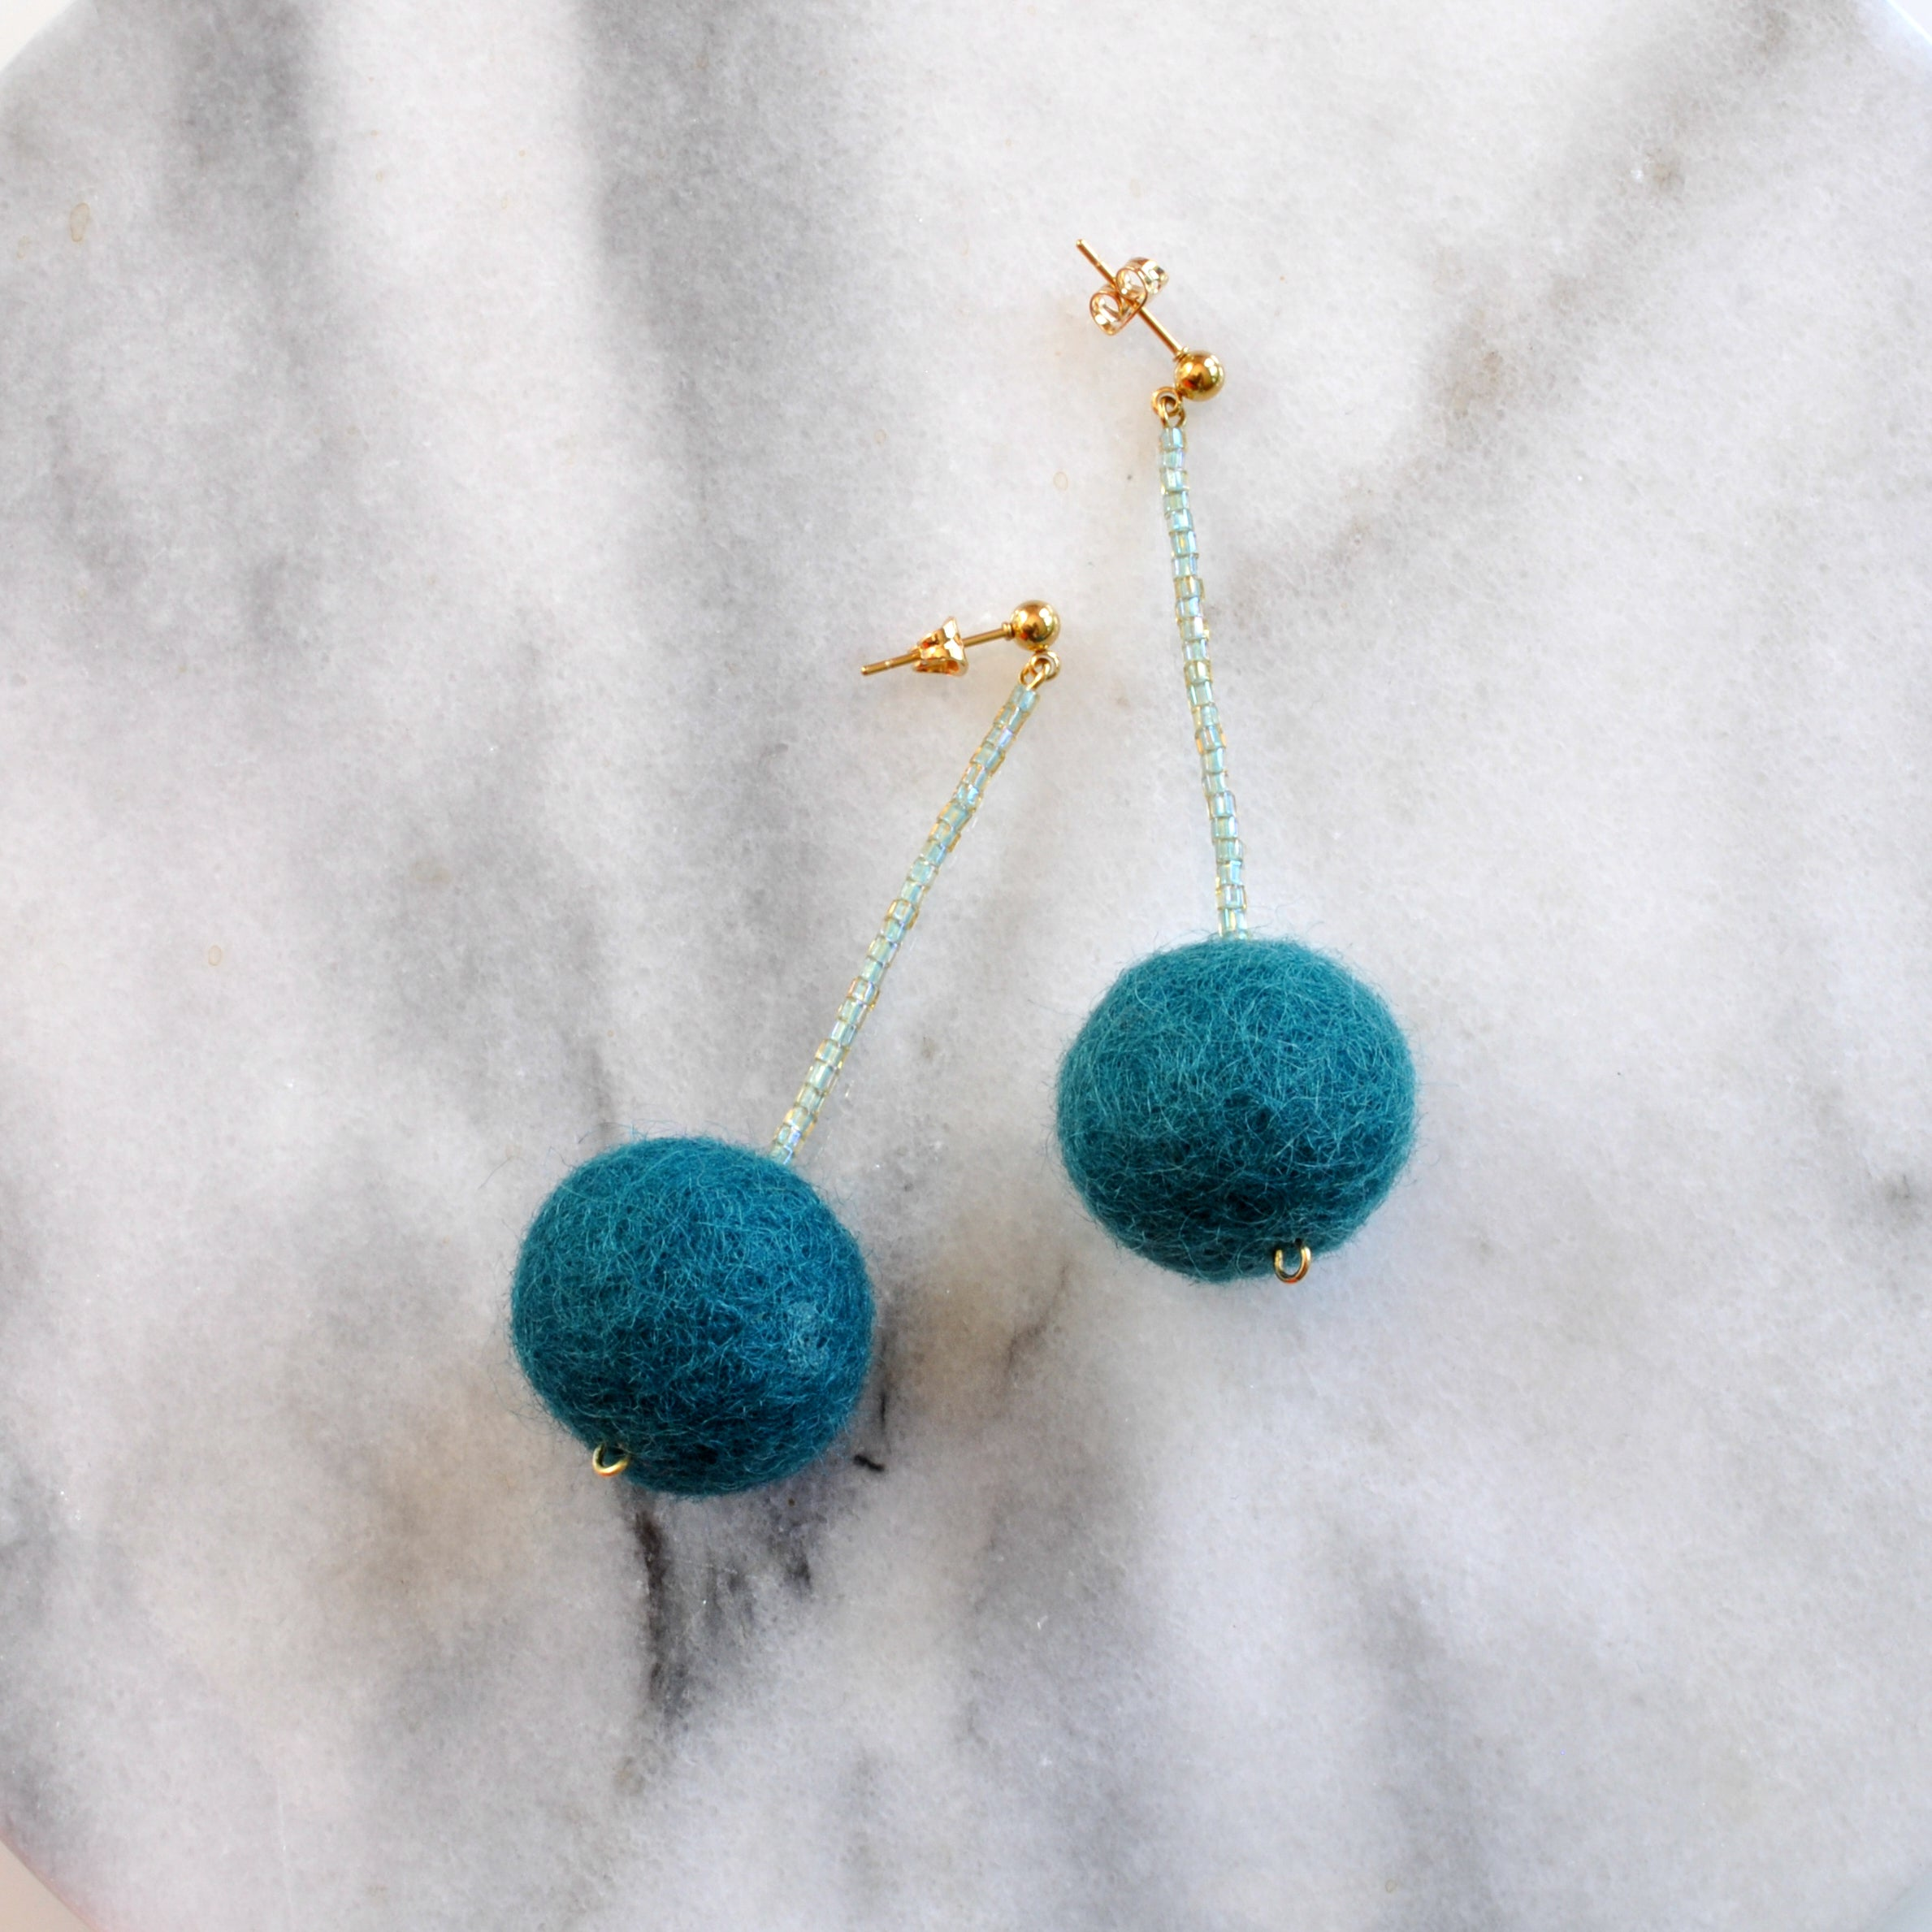 Libby & Smee pom pom earrings in Teal with seafoam color combination, still life